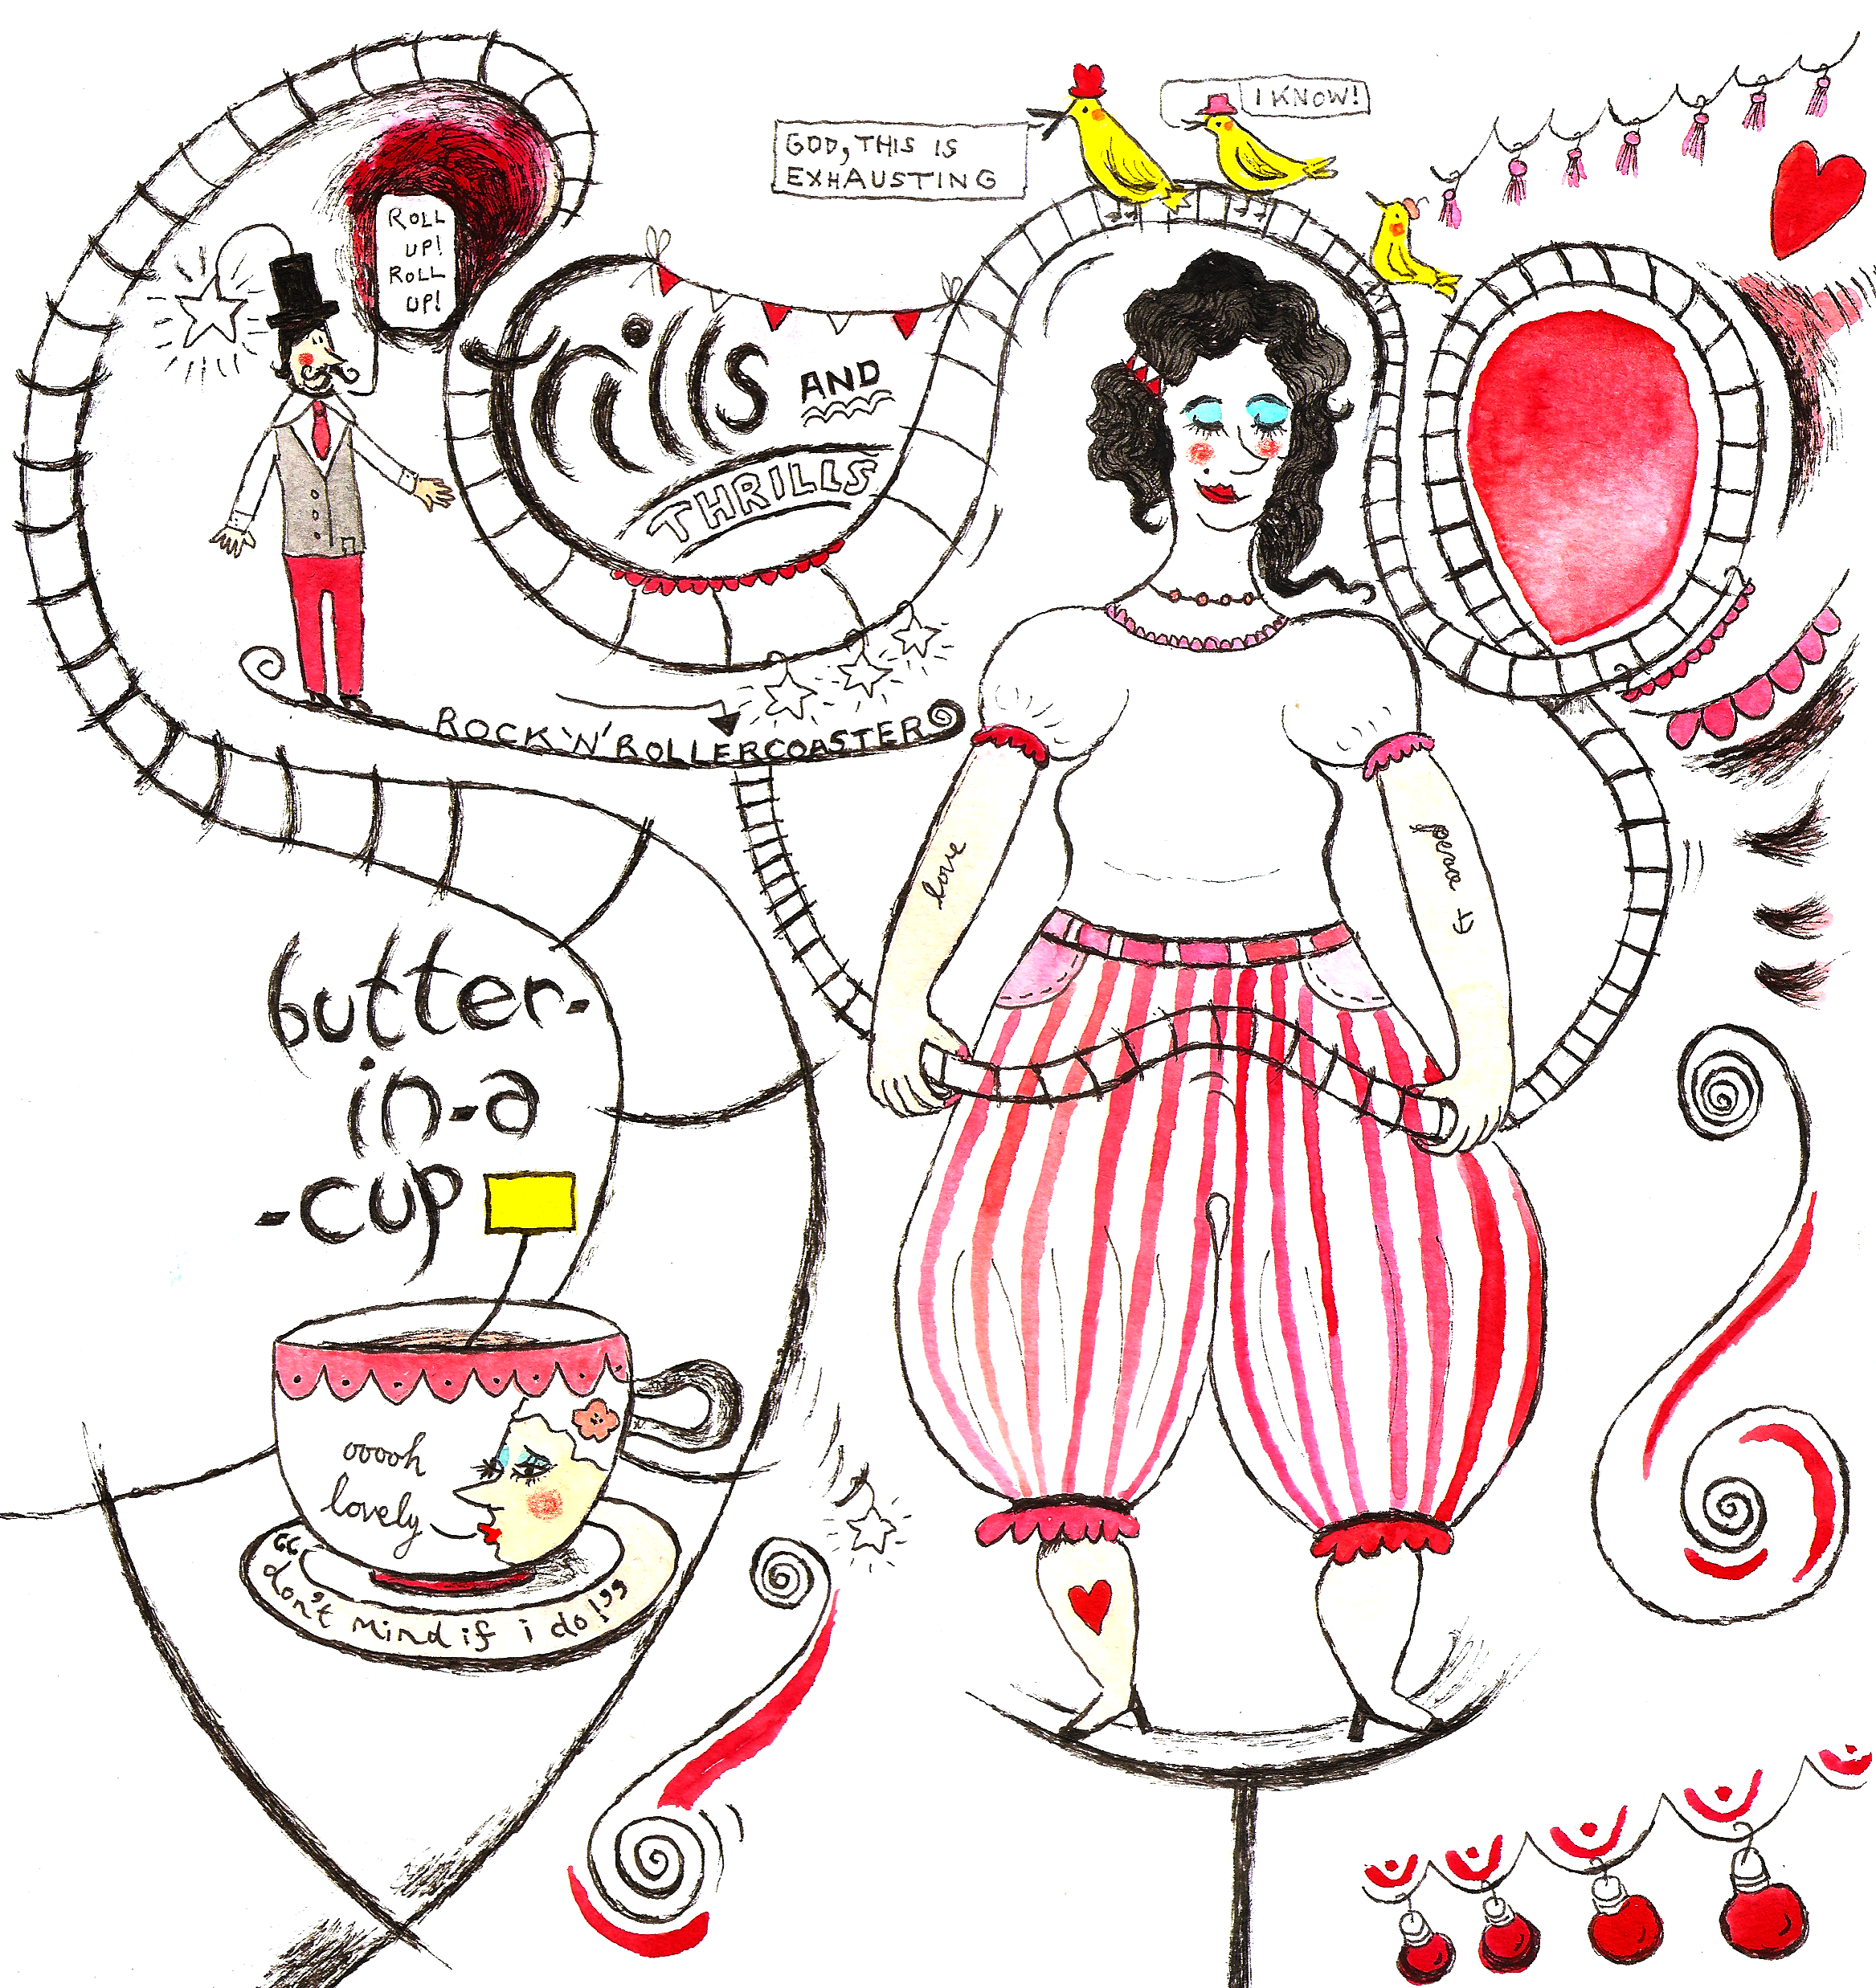 bands - frills and thrills by butter in-a-cup